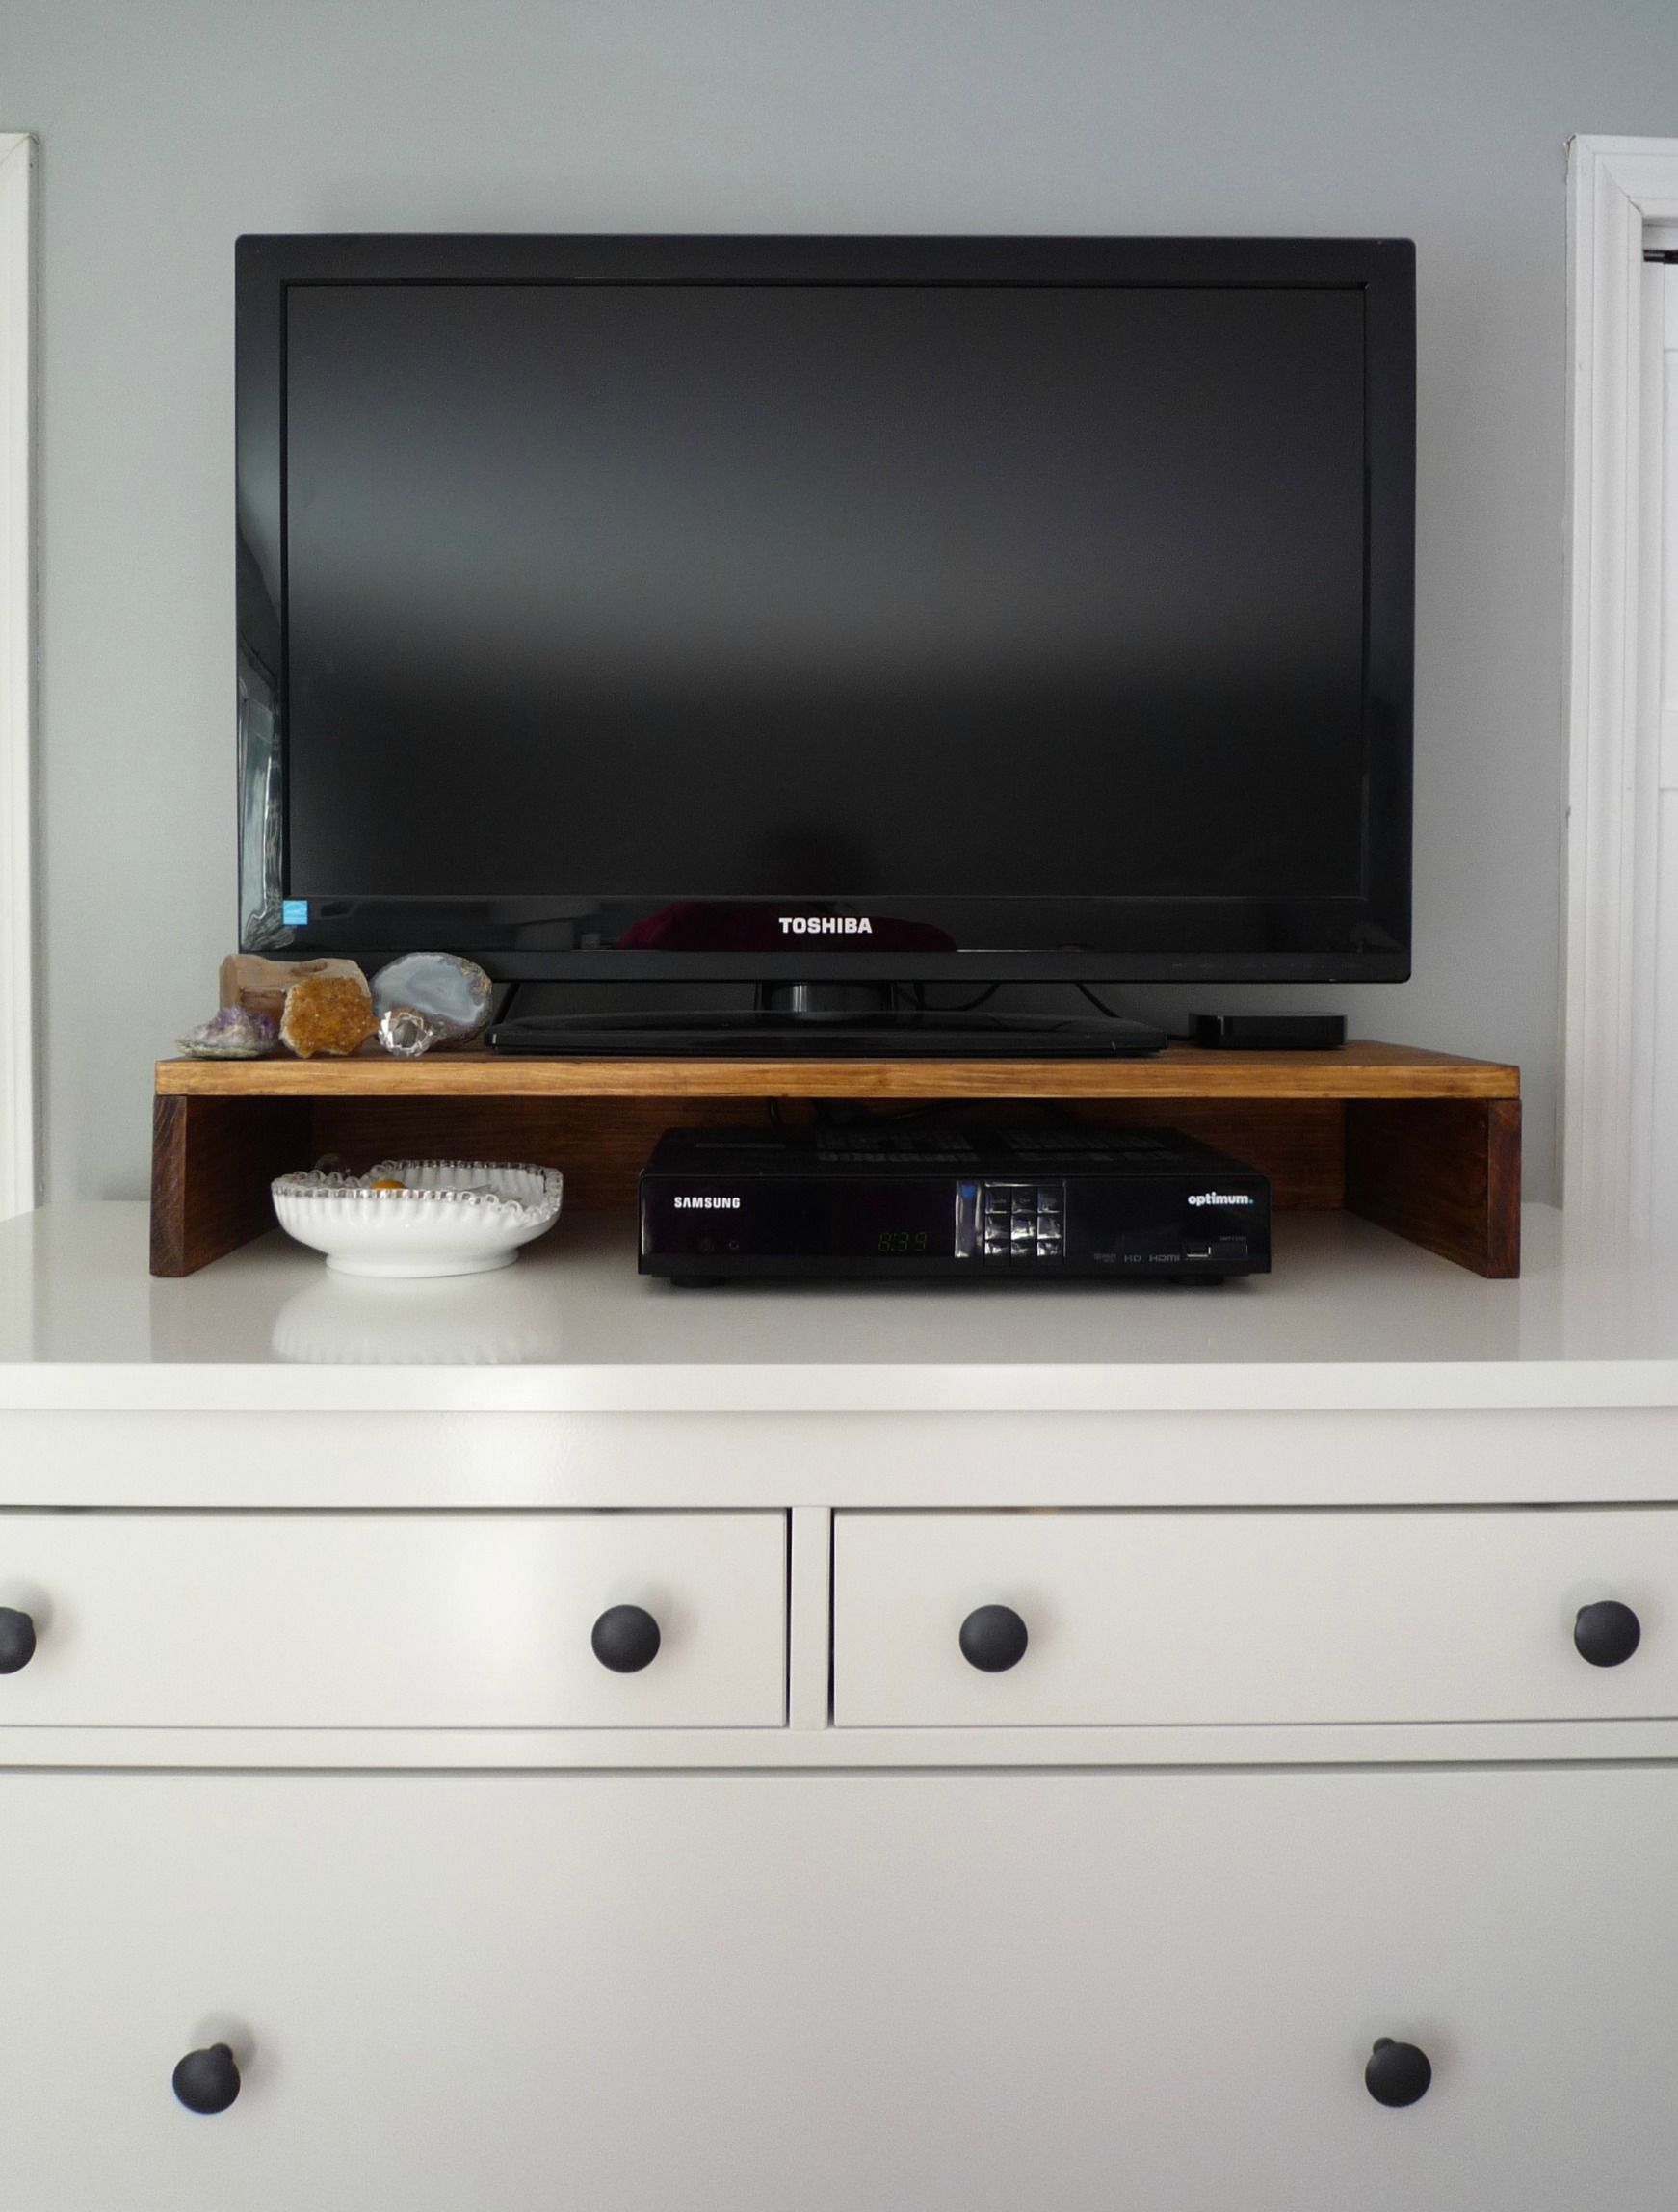 Diy Tabletop Tv Stand Tabletop Tv Stand Dresser Tv Stand